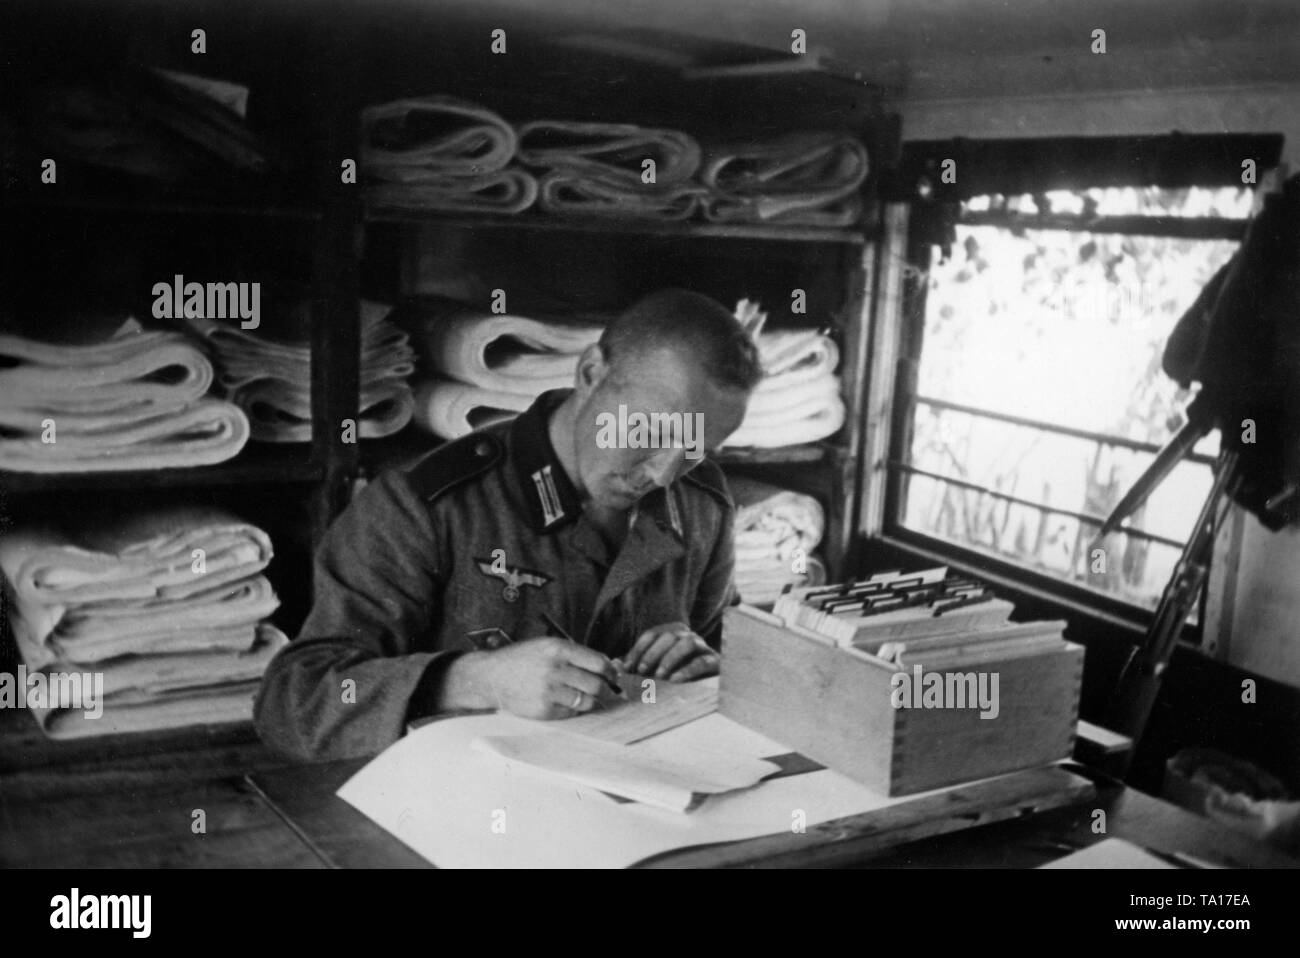 A member of the Wehrmacht arranges stocks of maps and records the maps on file cards. Photo: war reporter Utecht. Stock Photo